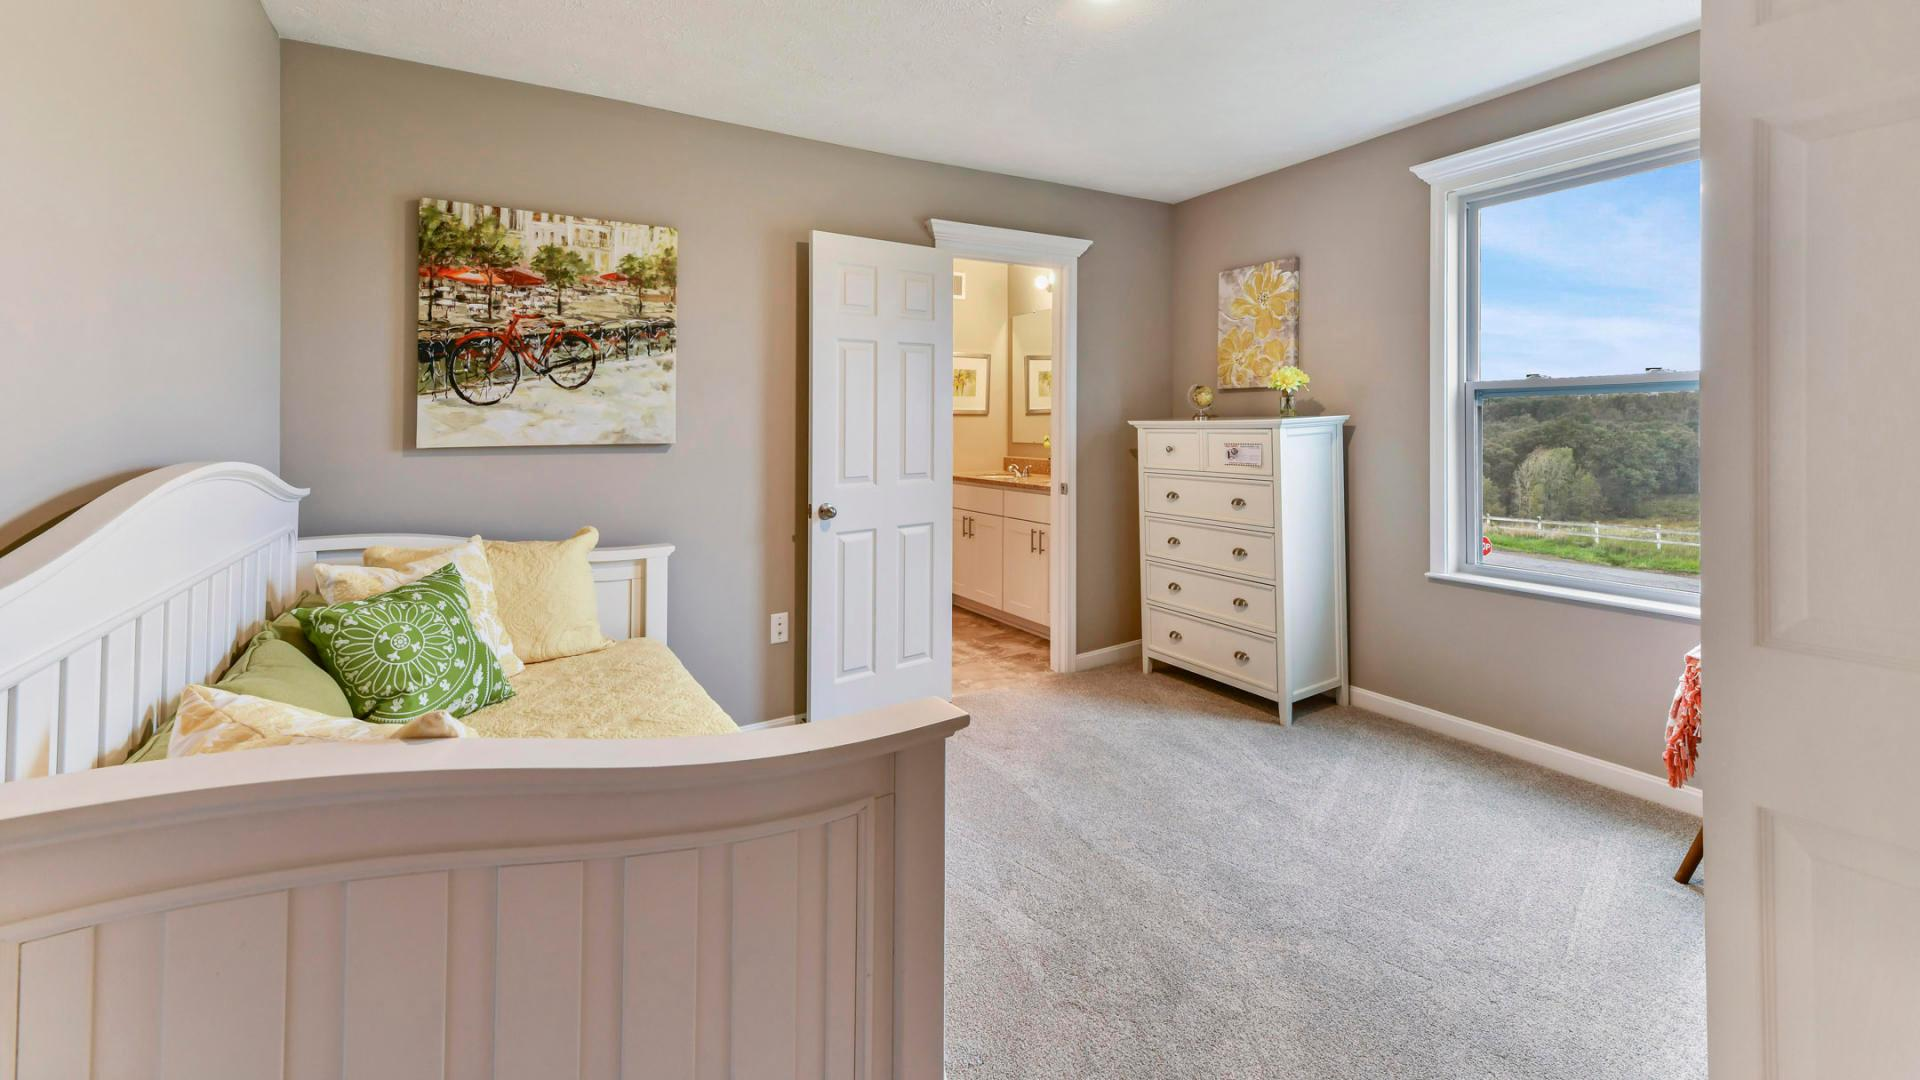 Bedroom featured in the Carlisle By Maronda Homes in Pittsburgh, PA